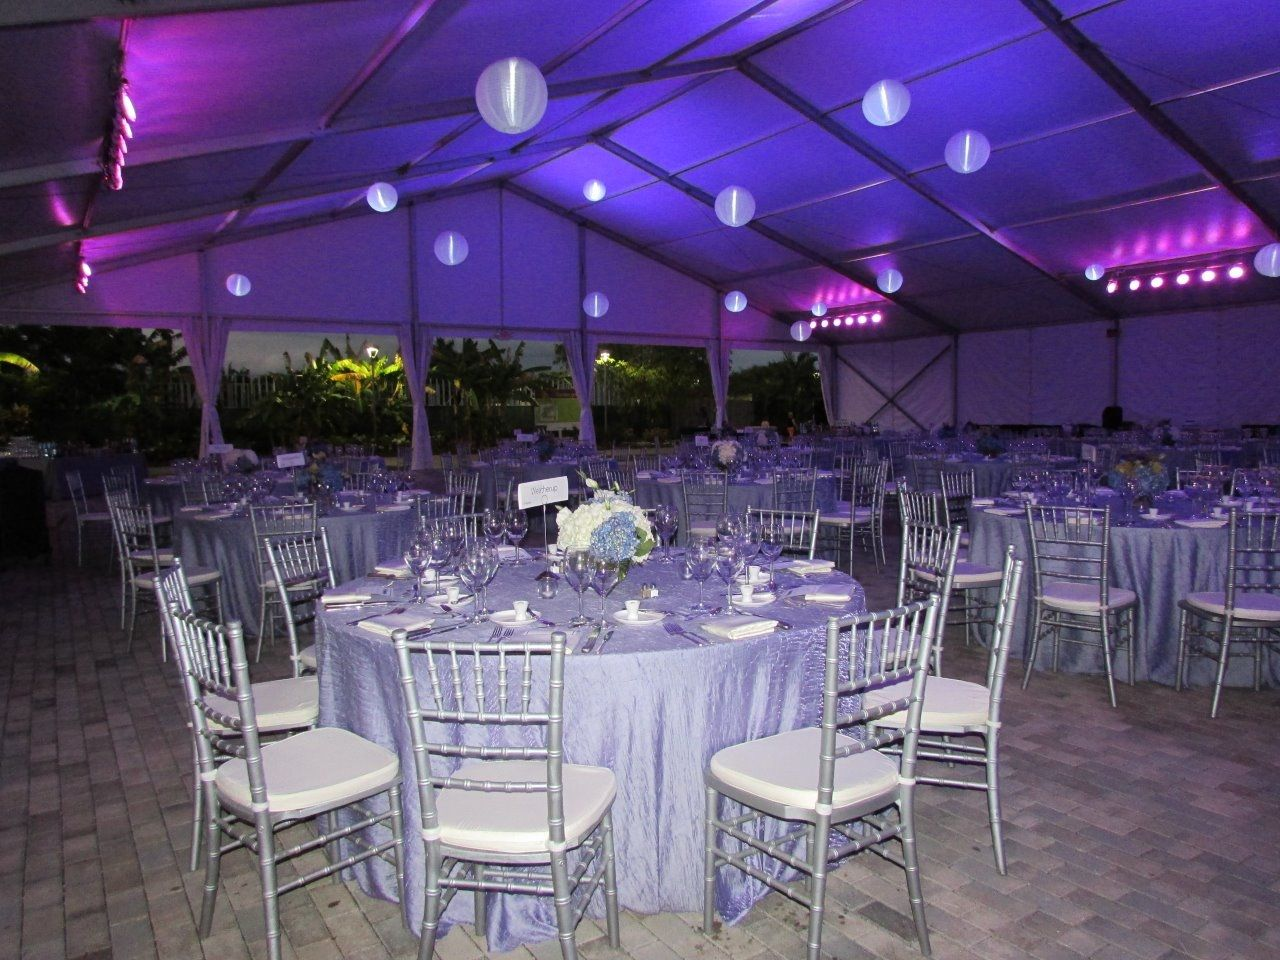 The event tent at the Naples Botanical Garden November 213